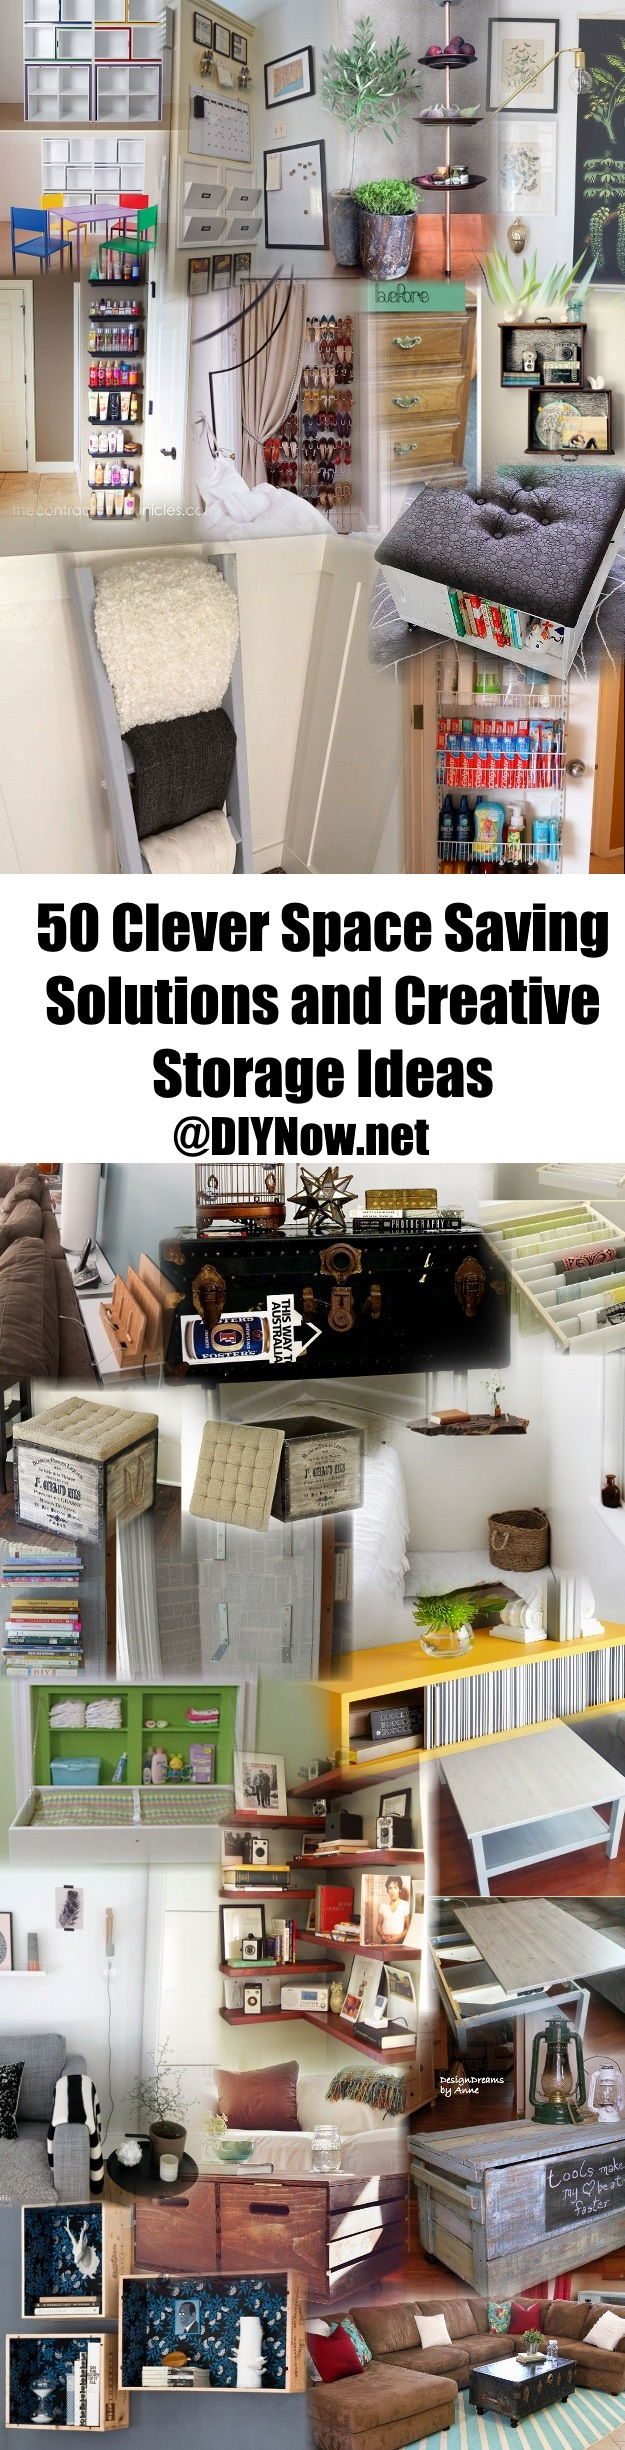 Astounding 50 Clever Space Saving Solutions And Creative Storage Ideas Largest Home Design Picture Inspirations Pitcheantrous